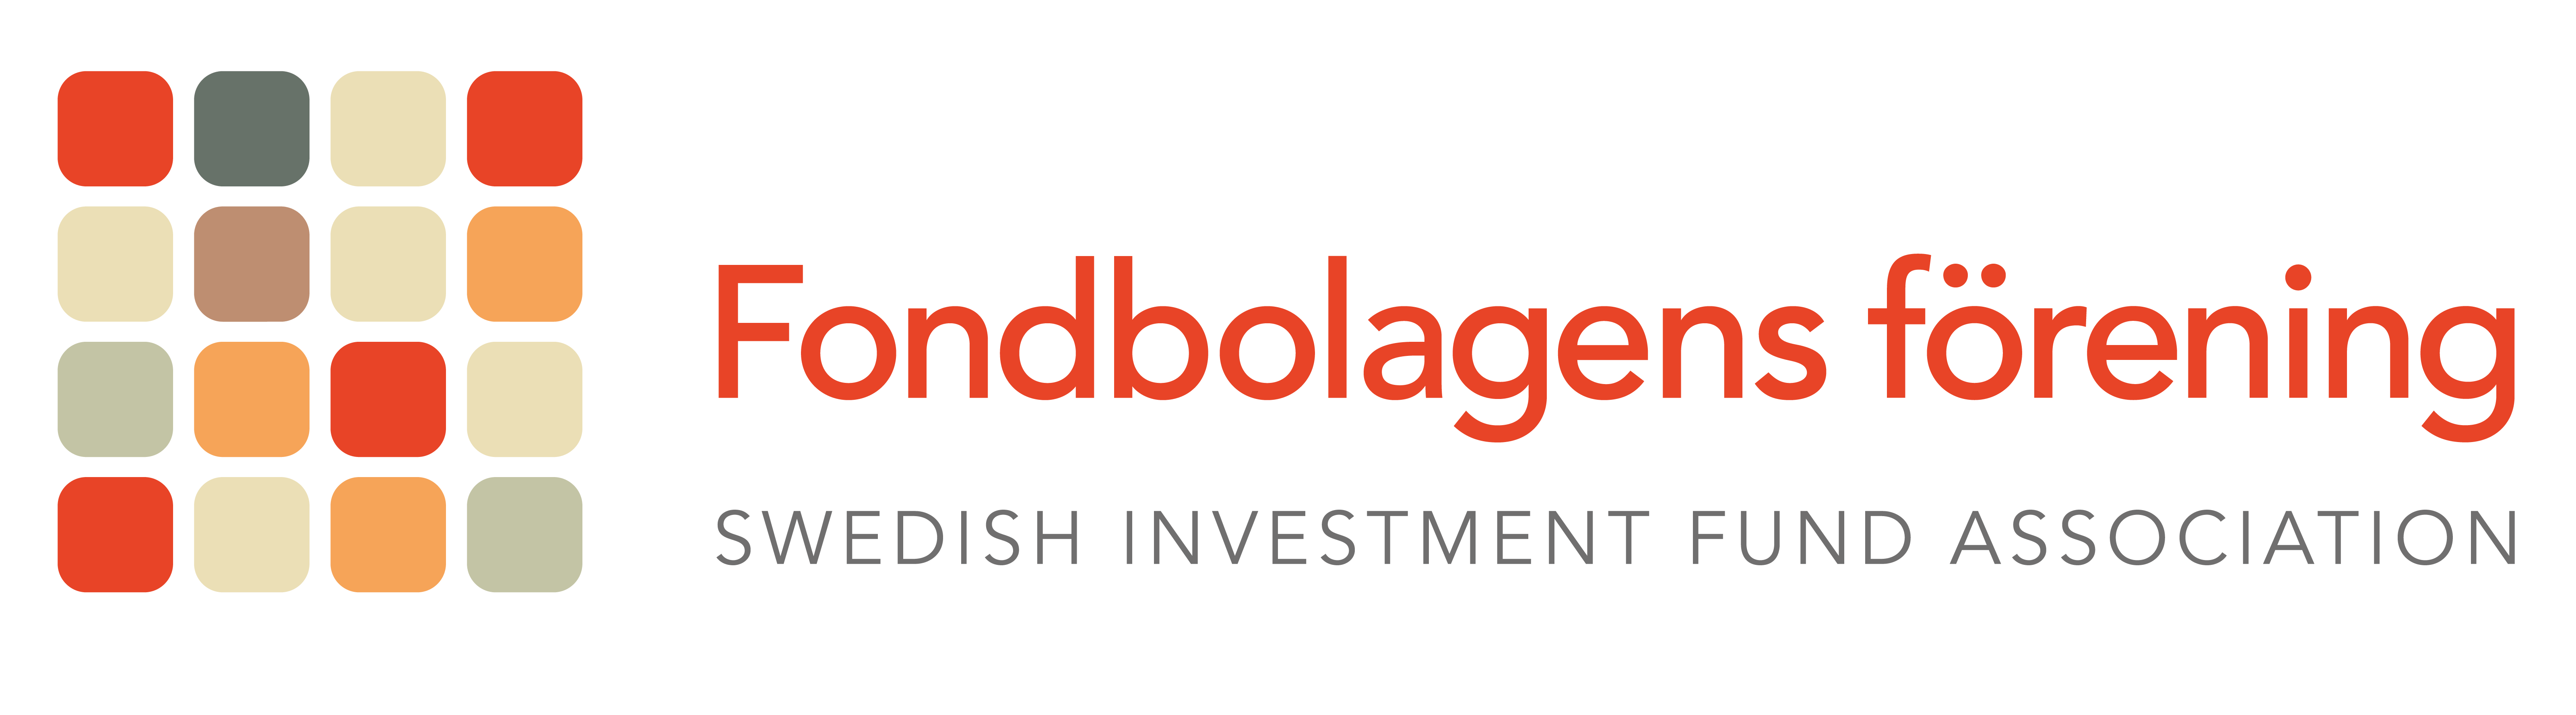 Swedish Investment Fund Association